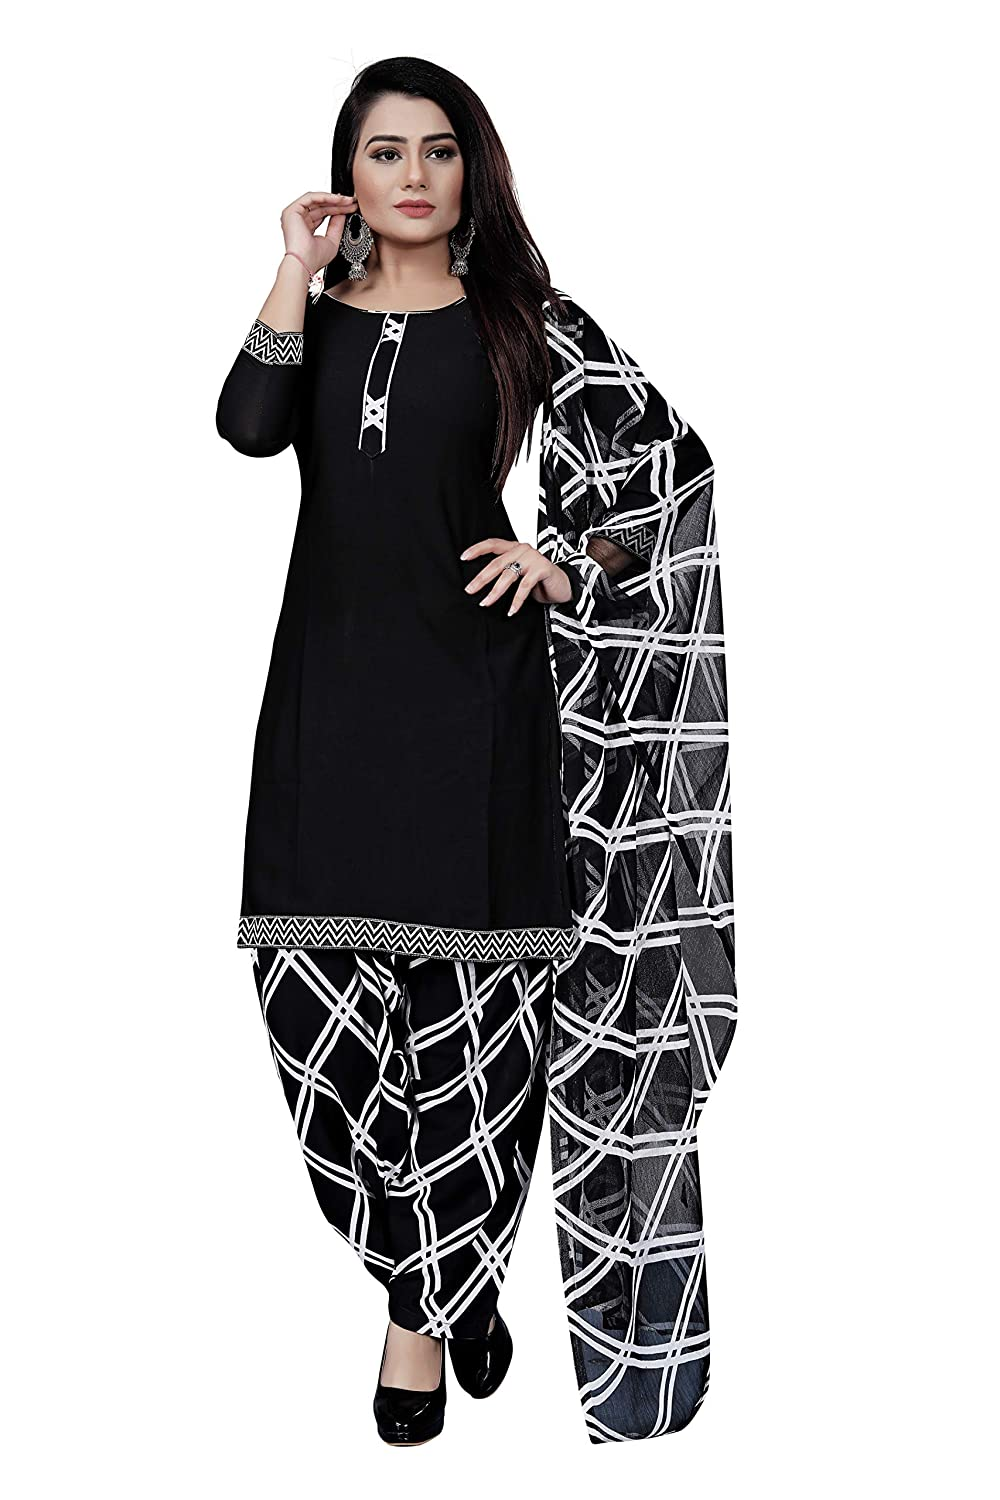 ANNI DESIGNER Women's Crepe Black Colour Printed Salwer Suit Dress Material